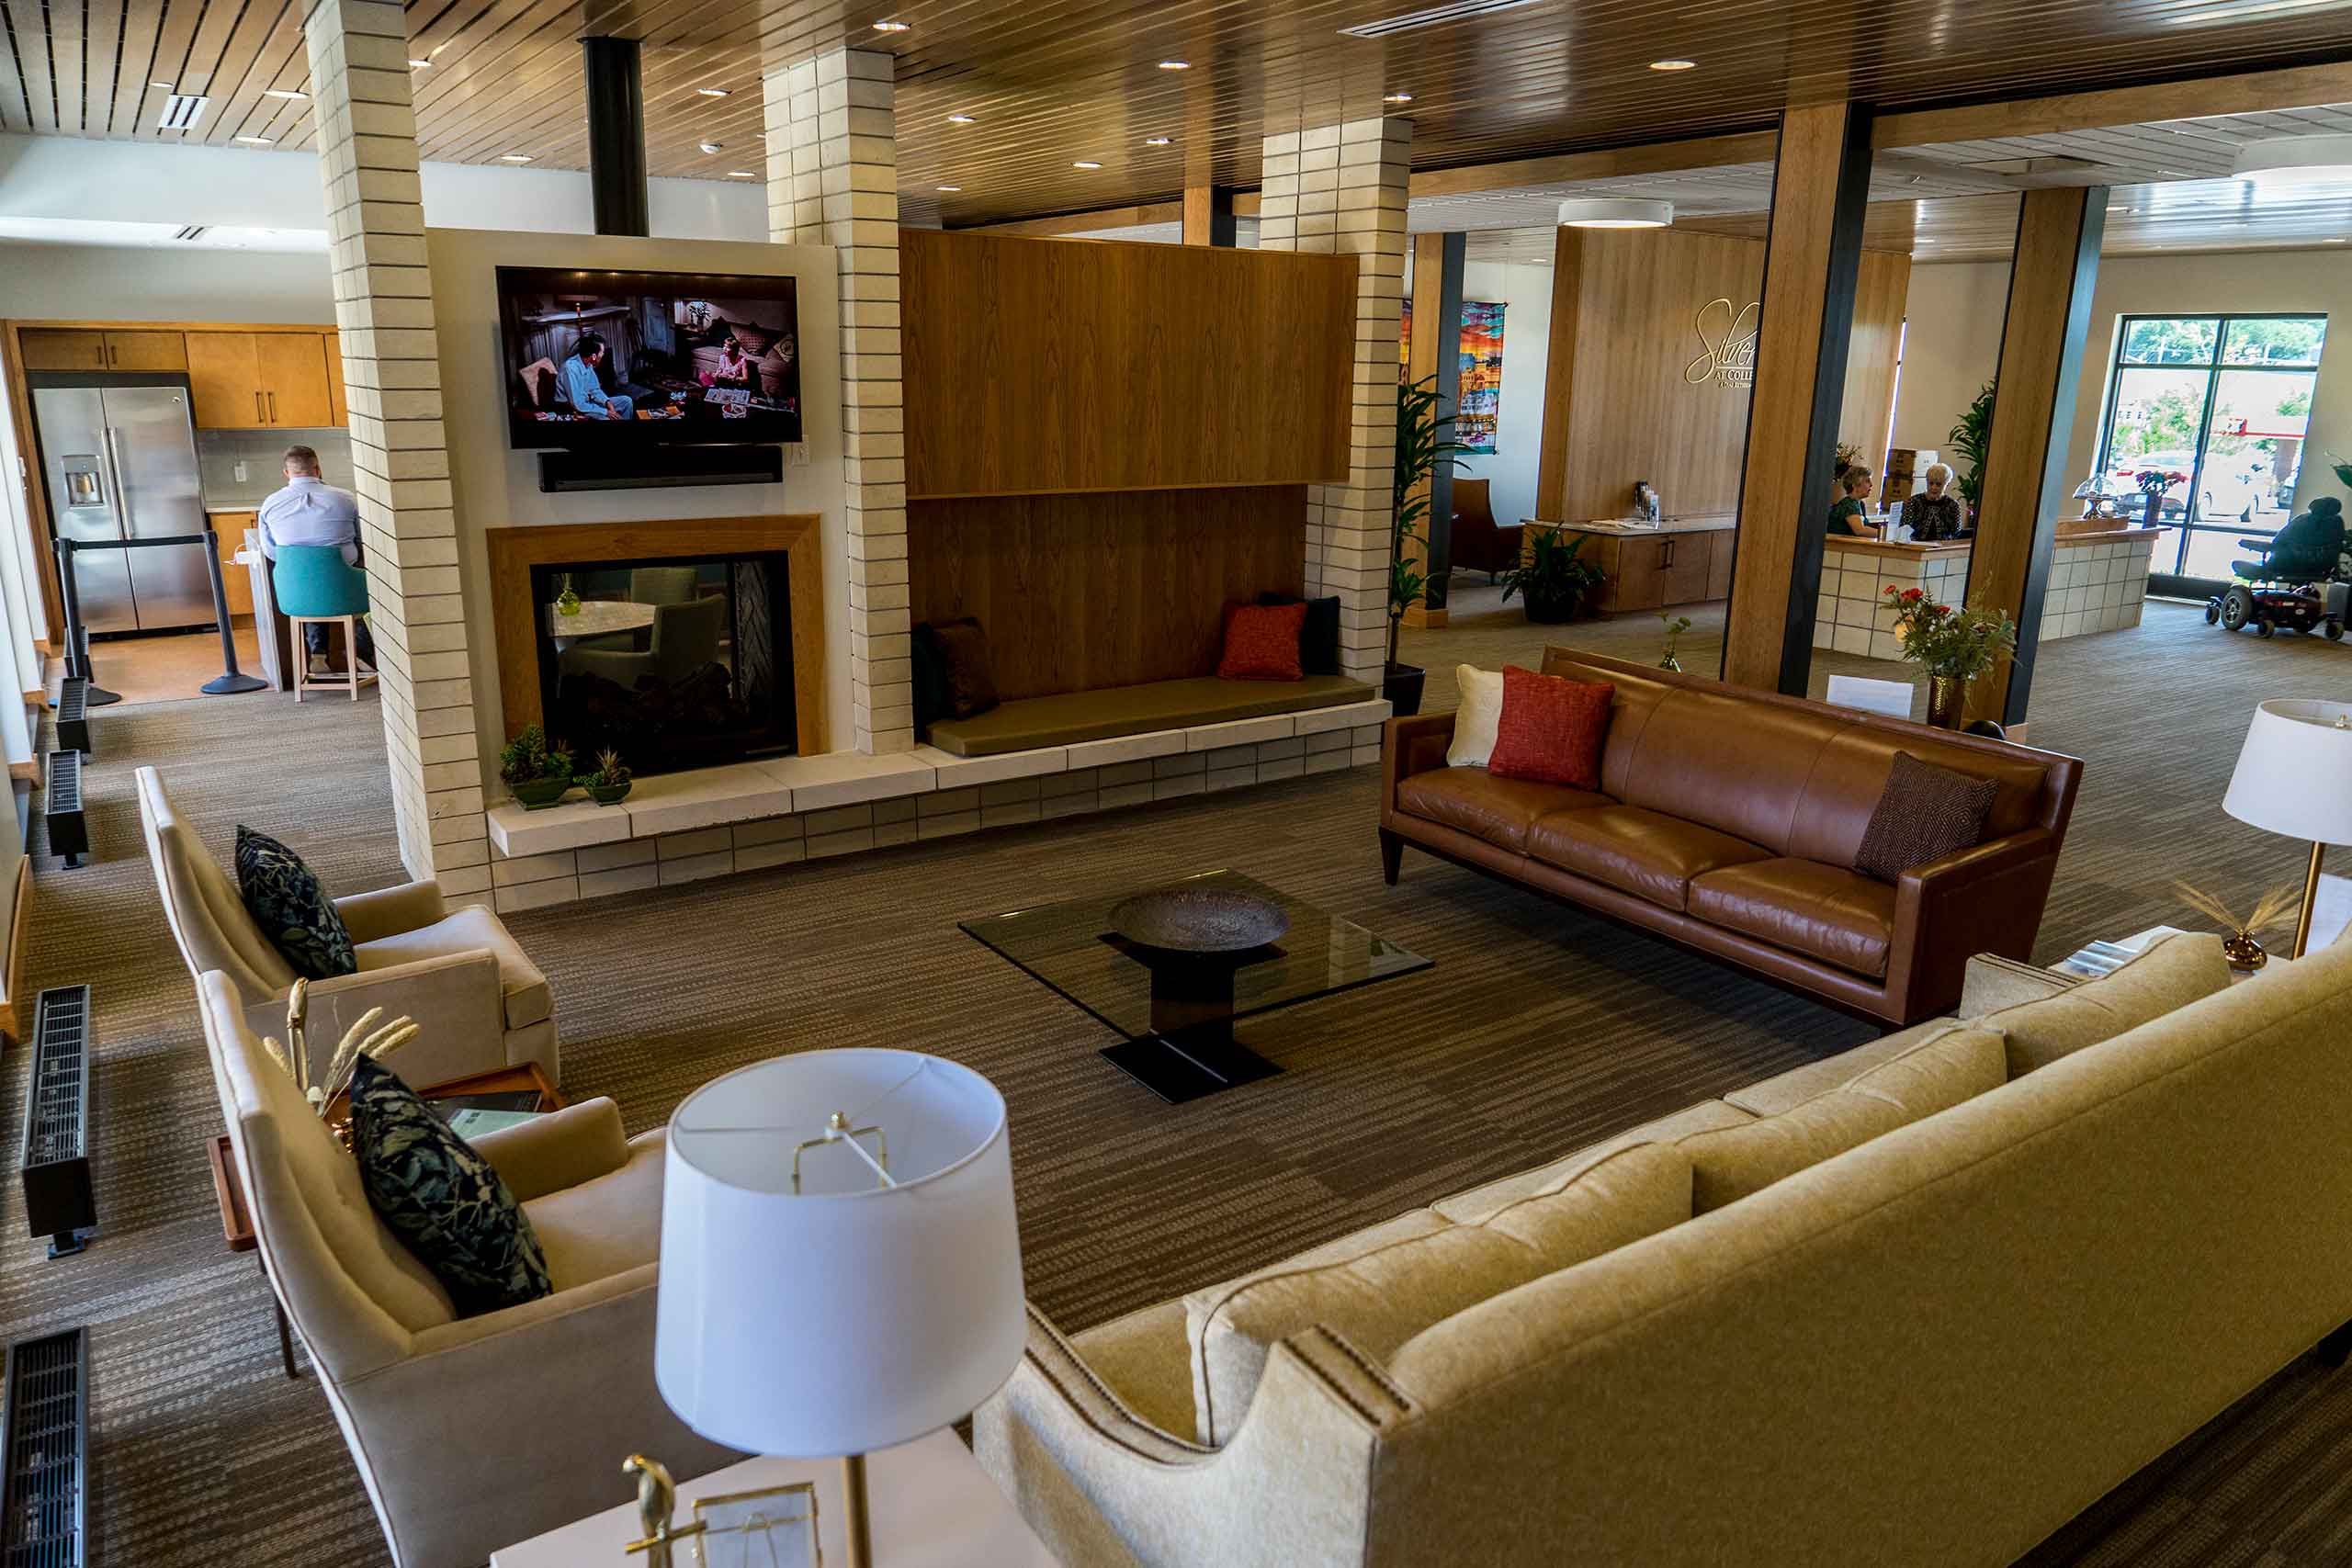 Silvercrest-at-College-View-Assisted-Living-Common-Area-wide